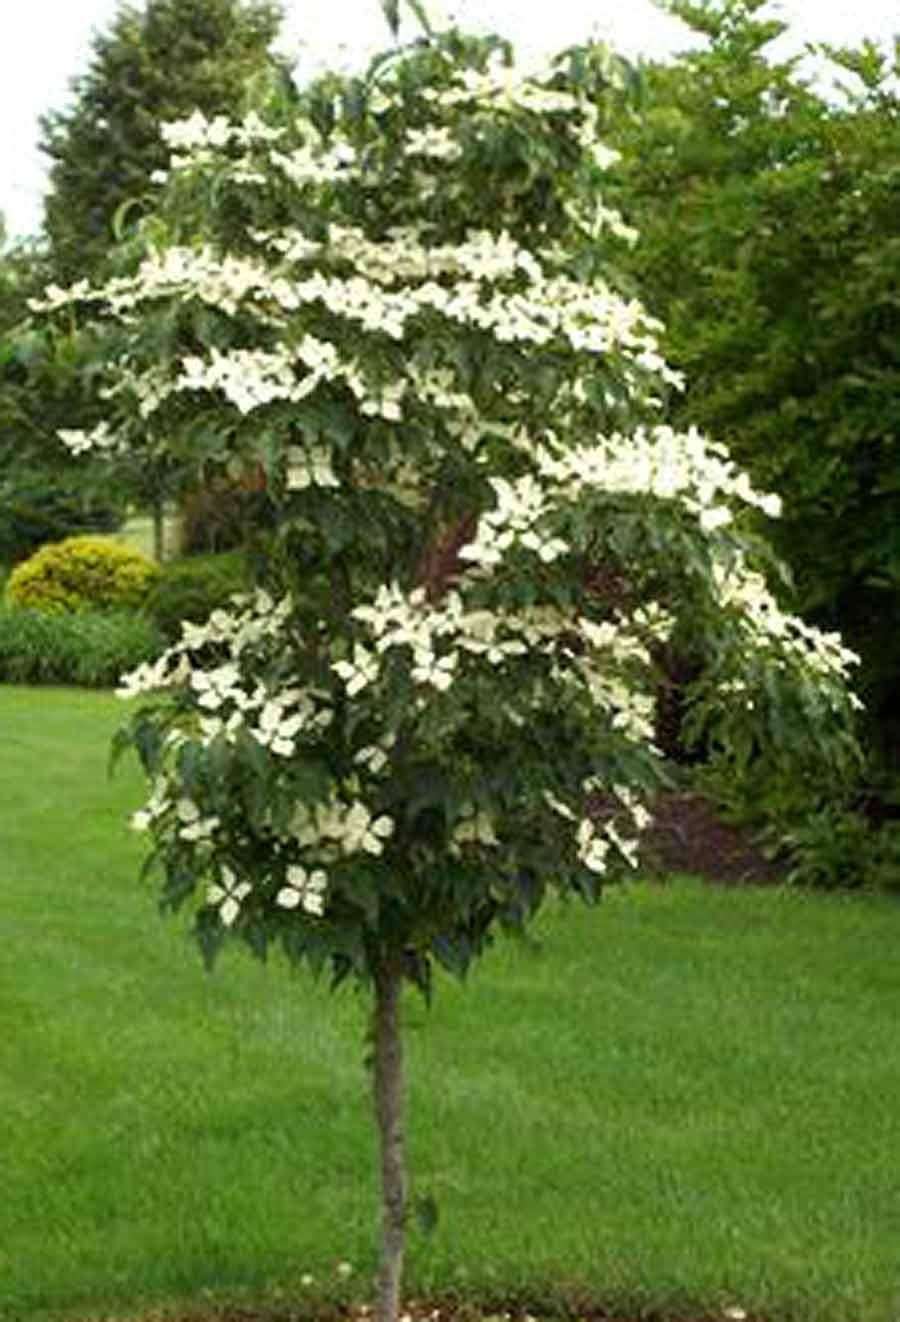 Snow Tower Cornus kousa 'Snow Tower' is the most columnar